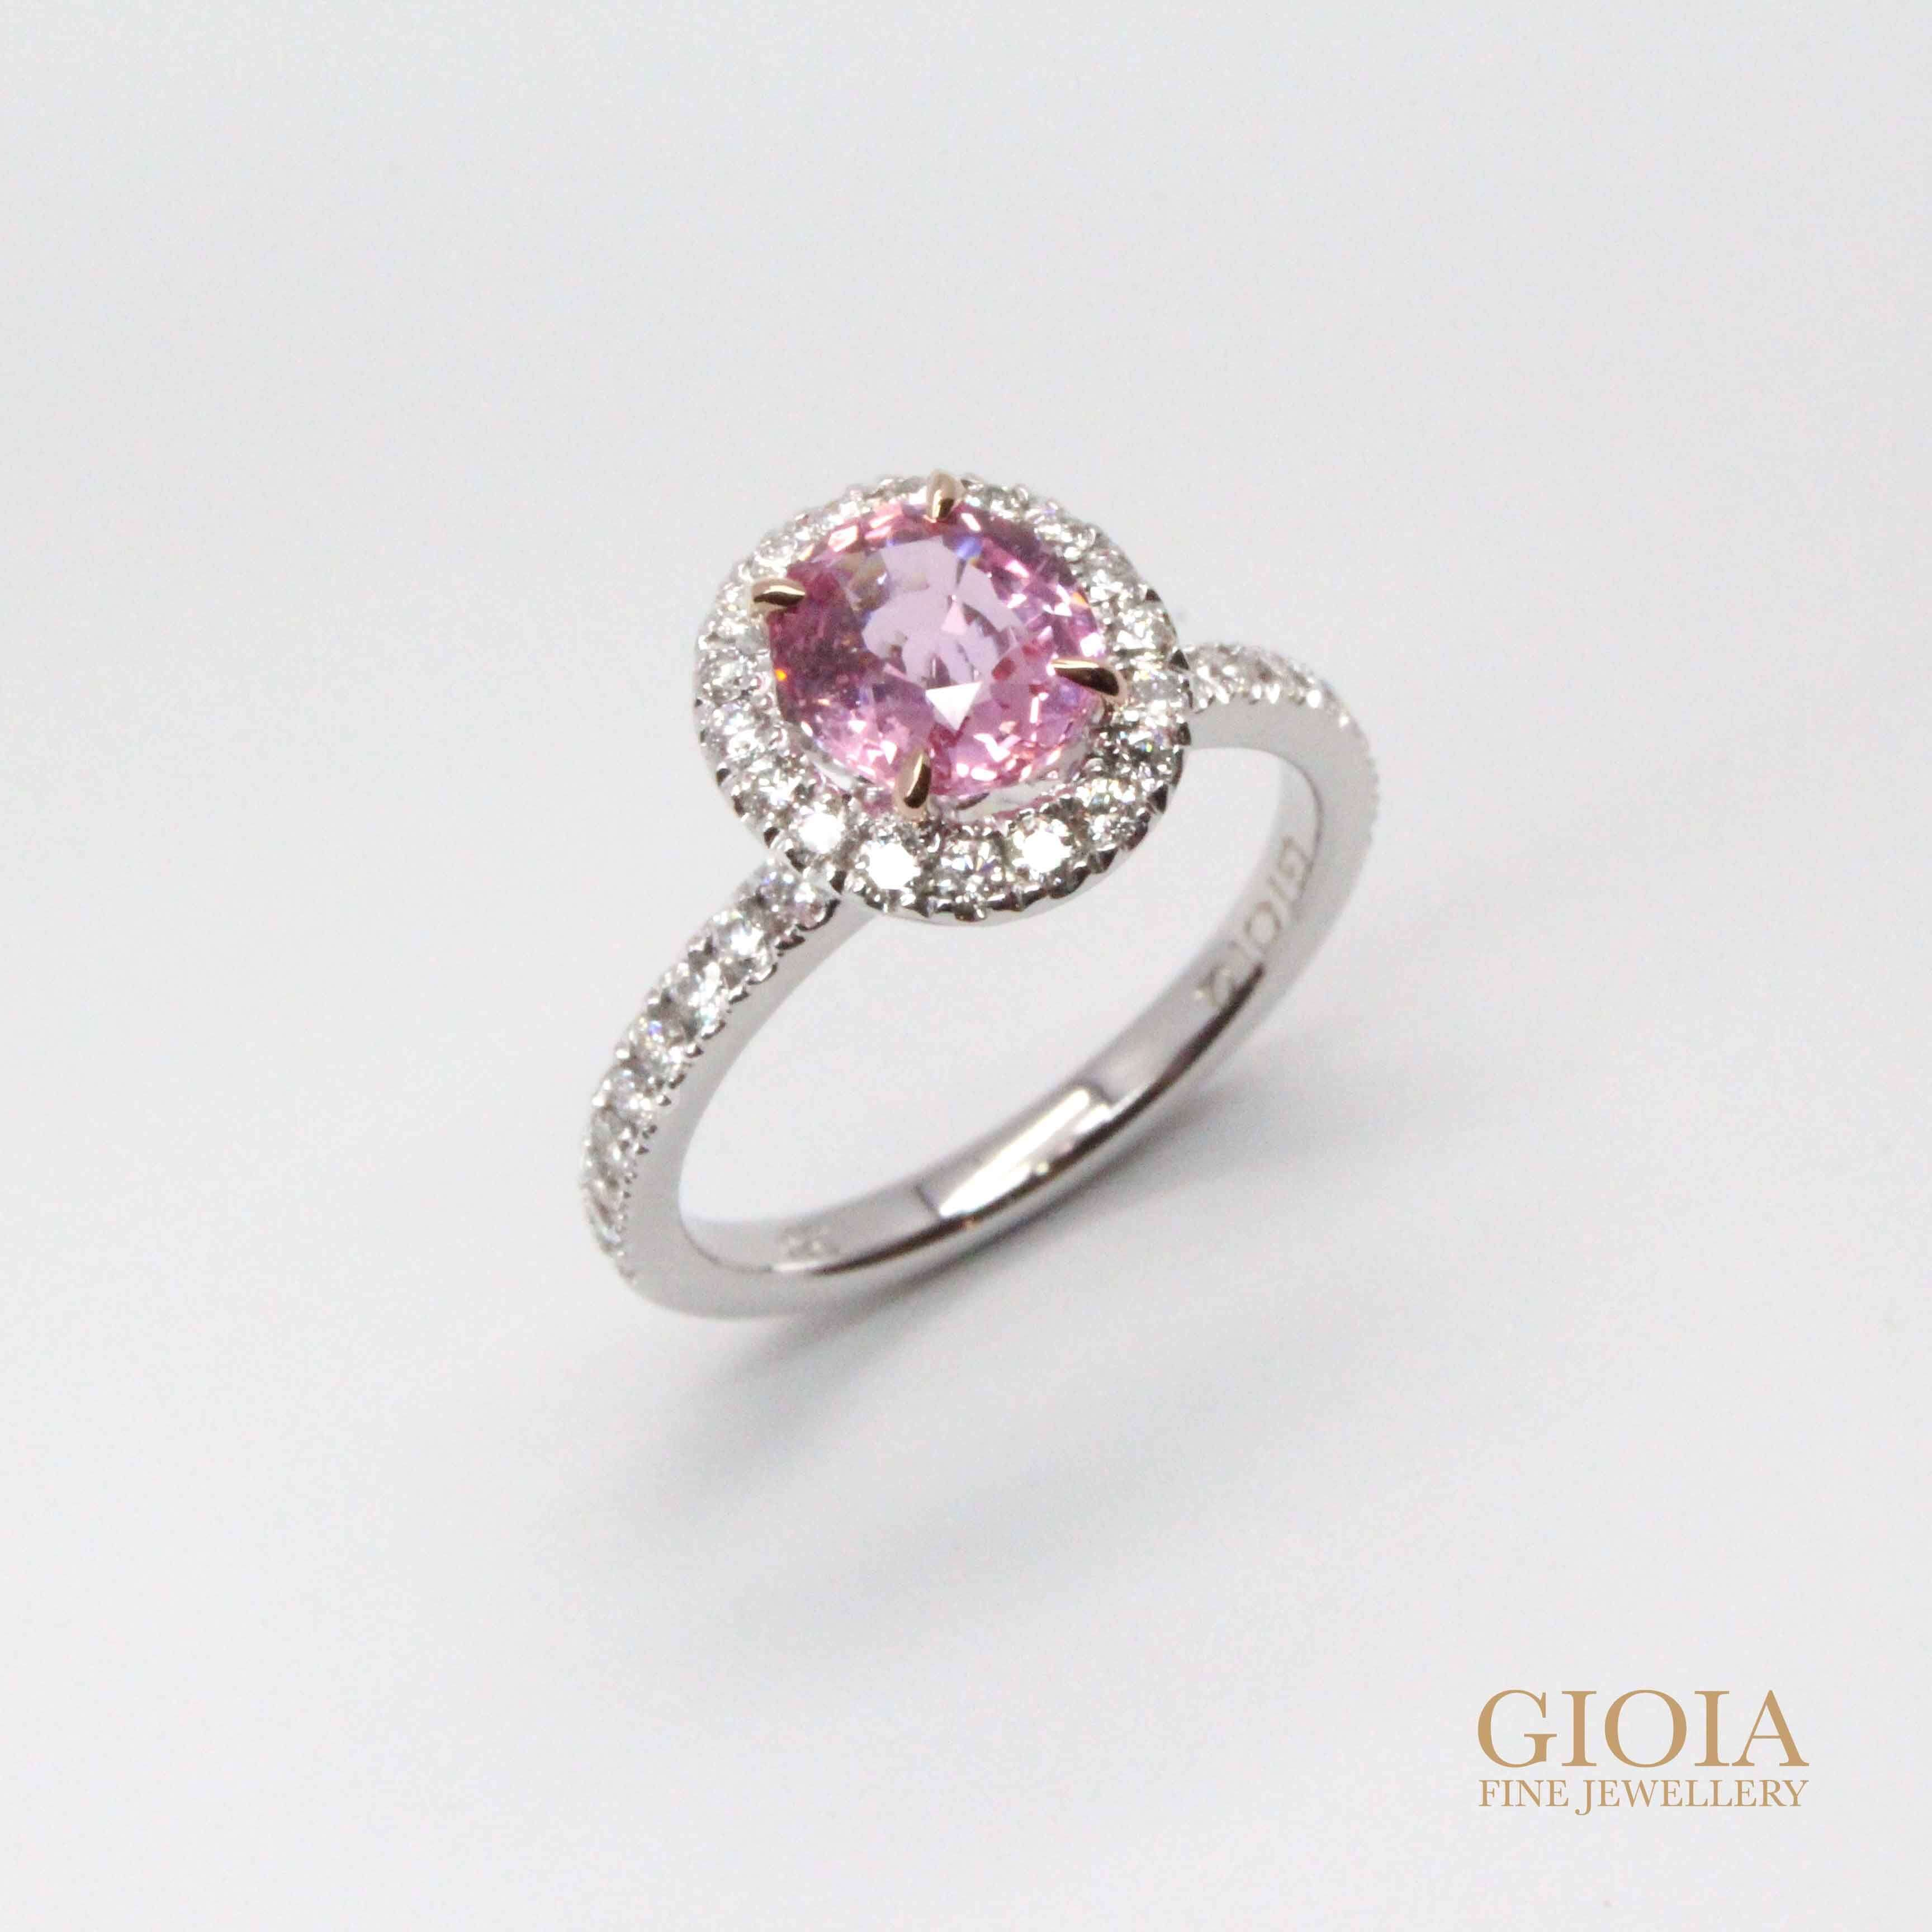 Padparadscha Sapphire Unique halo solitaire Ring - Sapphire gemstone engagement ring | Local Singapore Custom made Jewellery